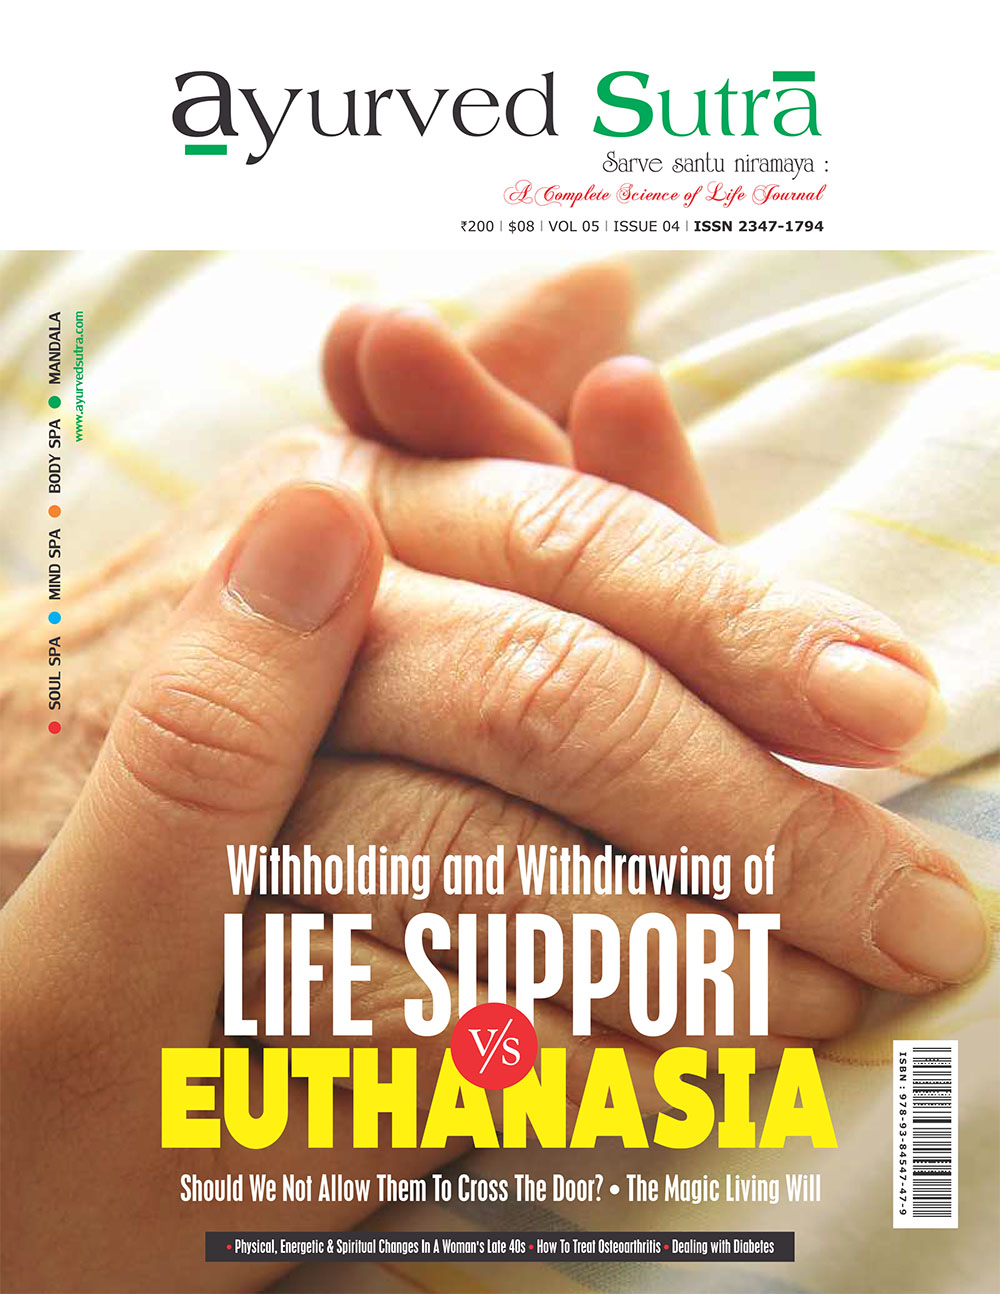 Ayurvedsutra Vol 05 issue 04 1 a - Withholding and Withdrawing of Life Support V/s Euthanasia